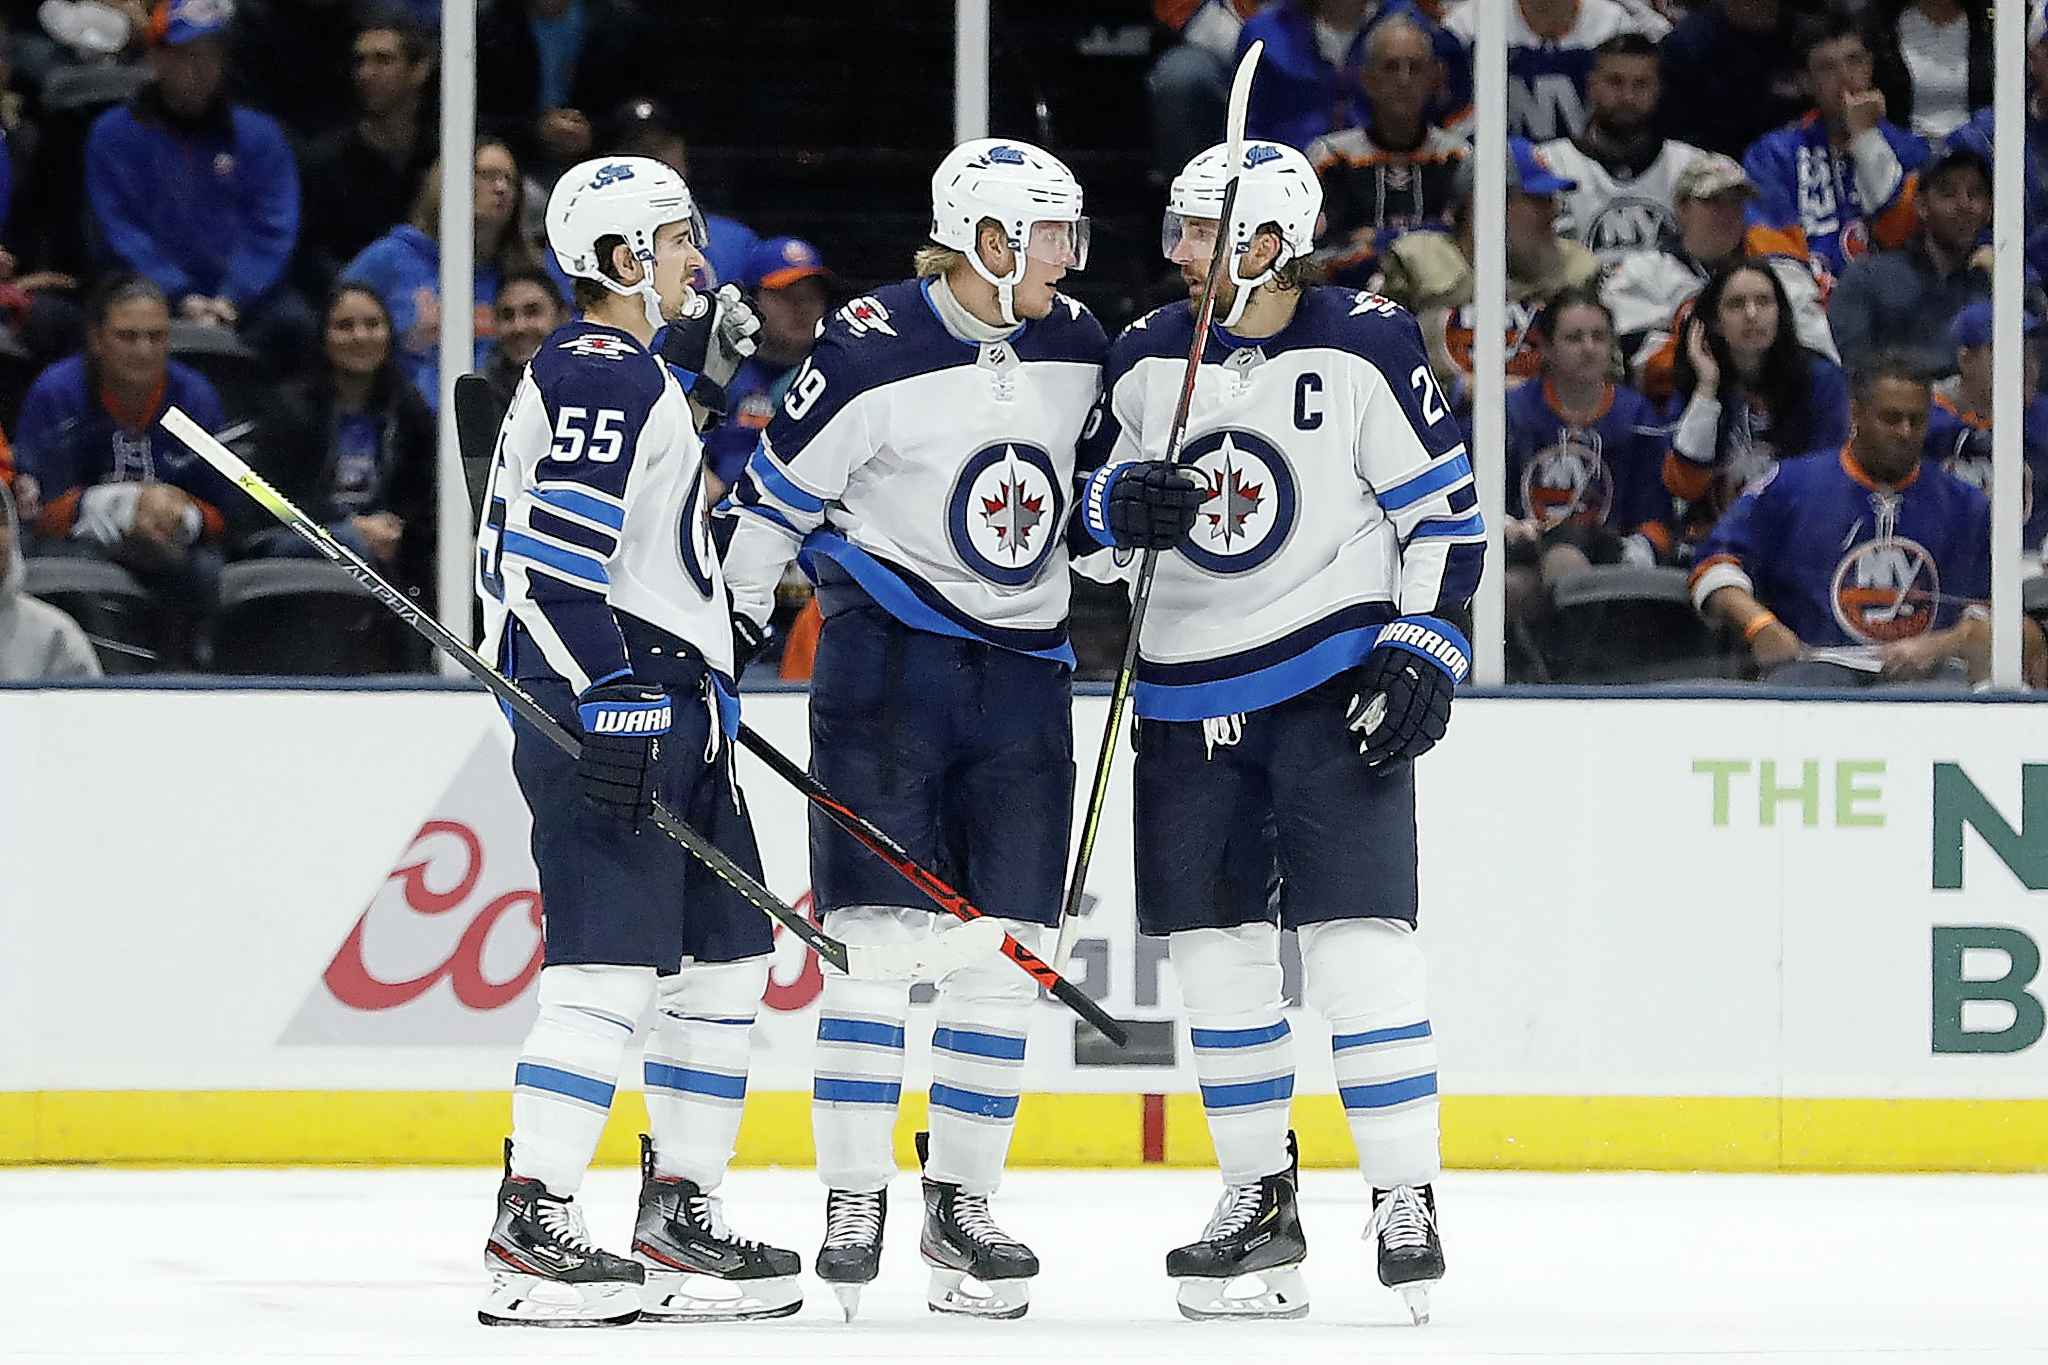 Winnipeg Jets right wing Patrik Laine, middle, celebrates with center Mark Scheifele (55) and right wing Blake Wheeler after scoring a goal against the New York Islanders during the second period of an NHL hockey game Sunday, Oct. 6, 2019, in Uniondale, N.Y. (AP Photo/Michael Owens)